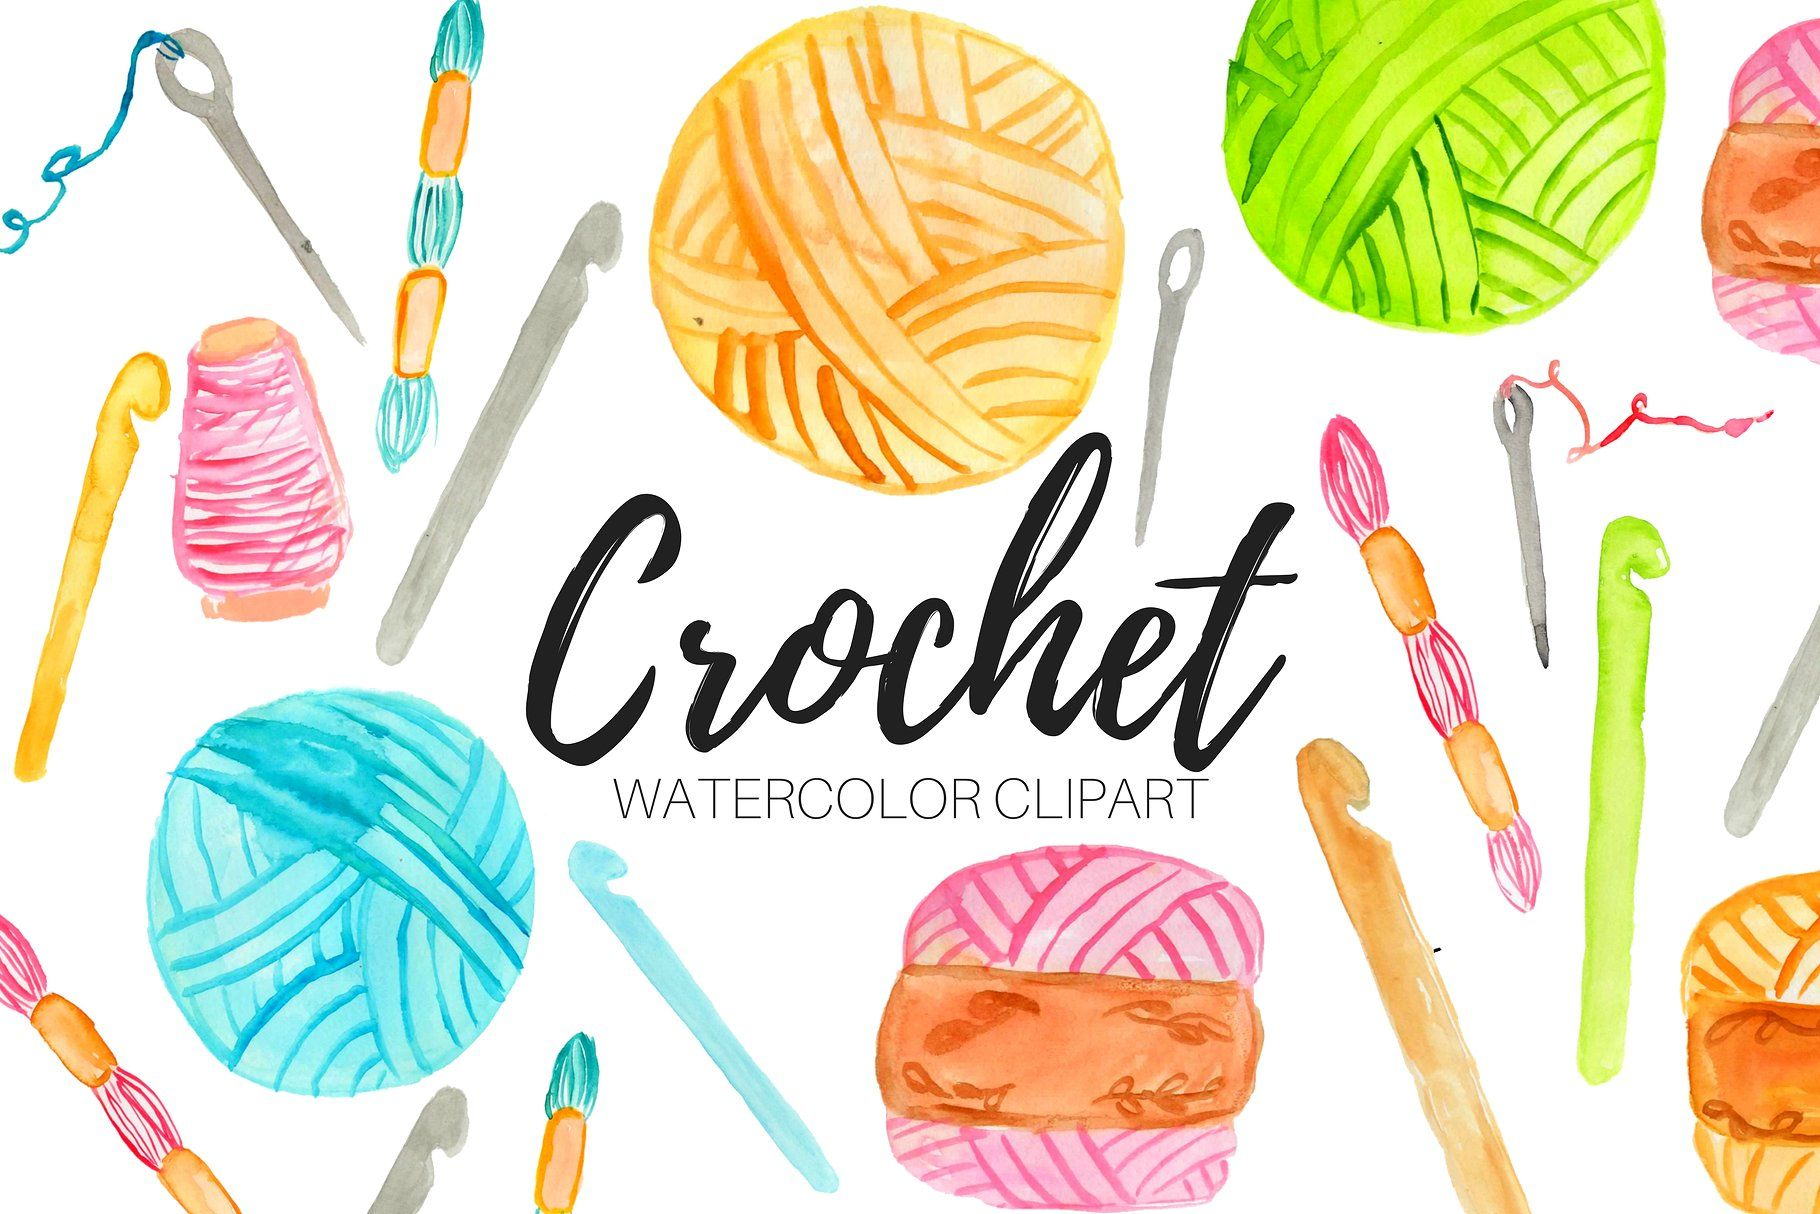 Crochet clipart background. Watercolor backgrounds perfect sticker